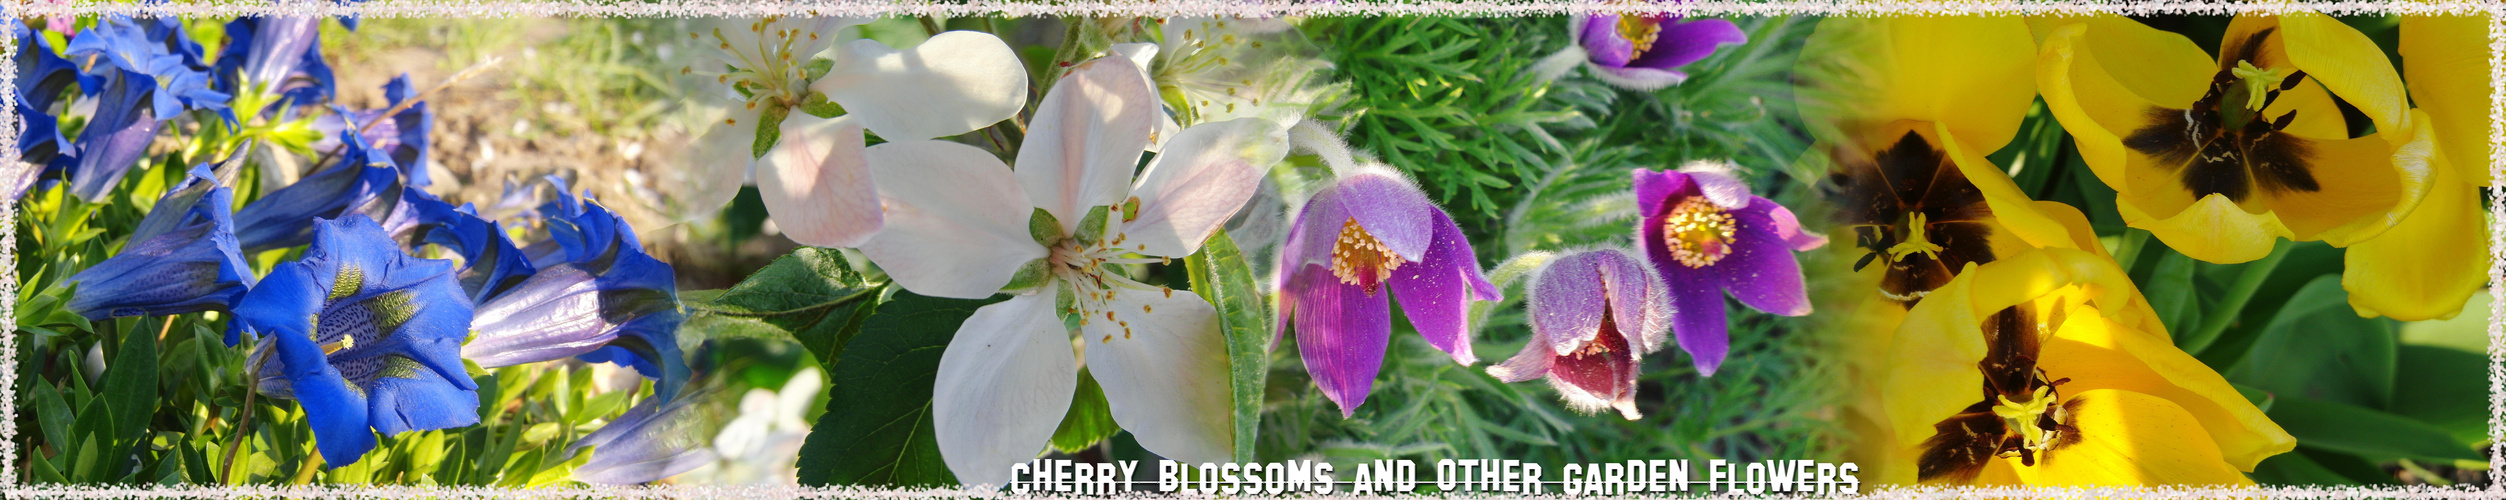 Cherry Blossoms And Other Garden Flowers...